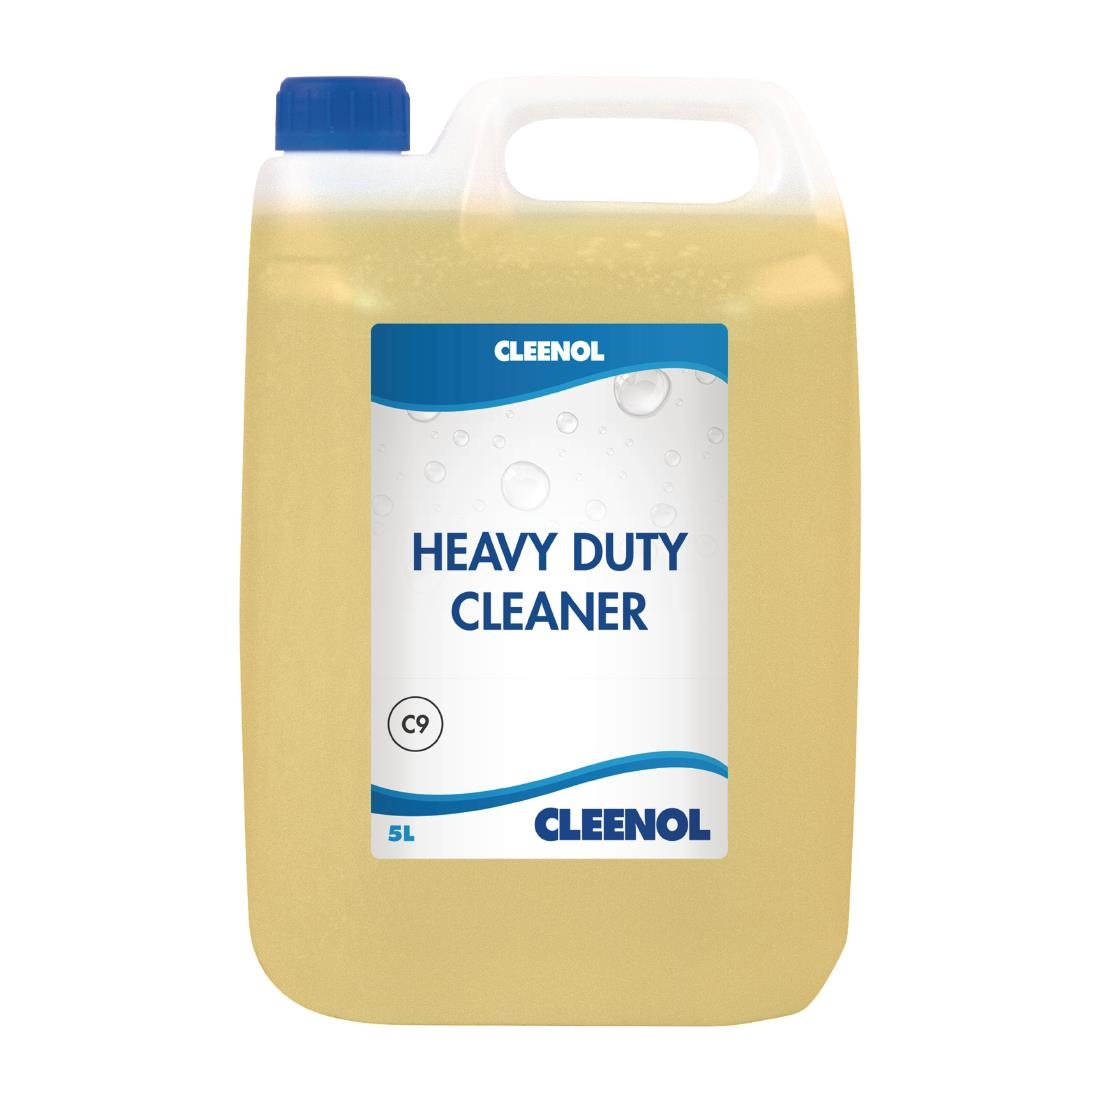 Image of Cleenol General Purpose Heavy Duty Cleaner 5Ltr (Pack of 2) Pack of 2